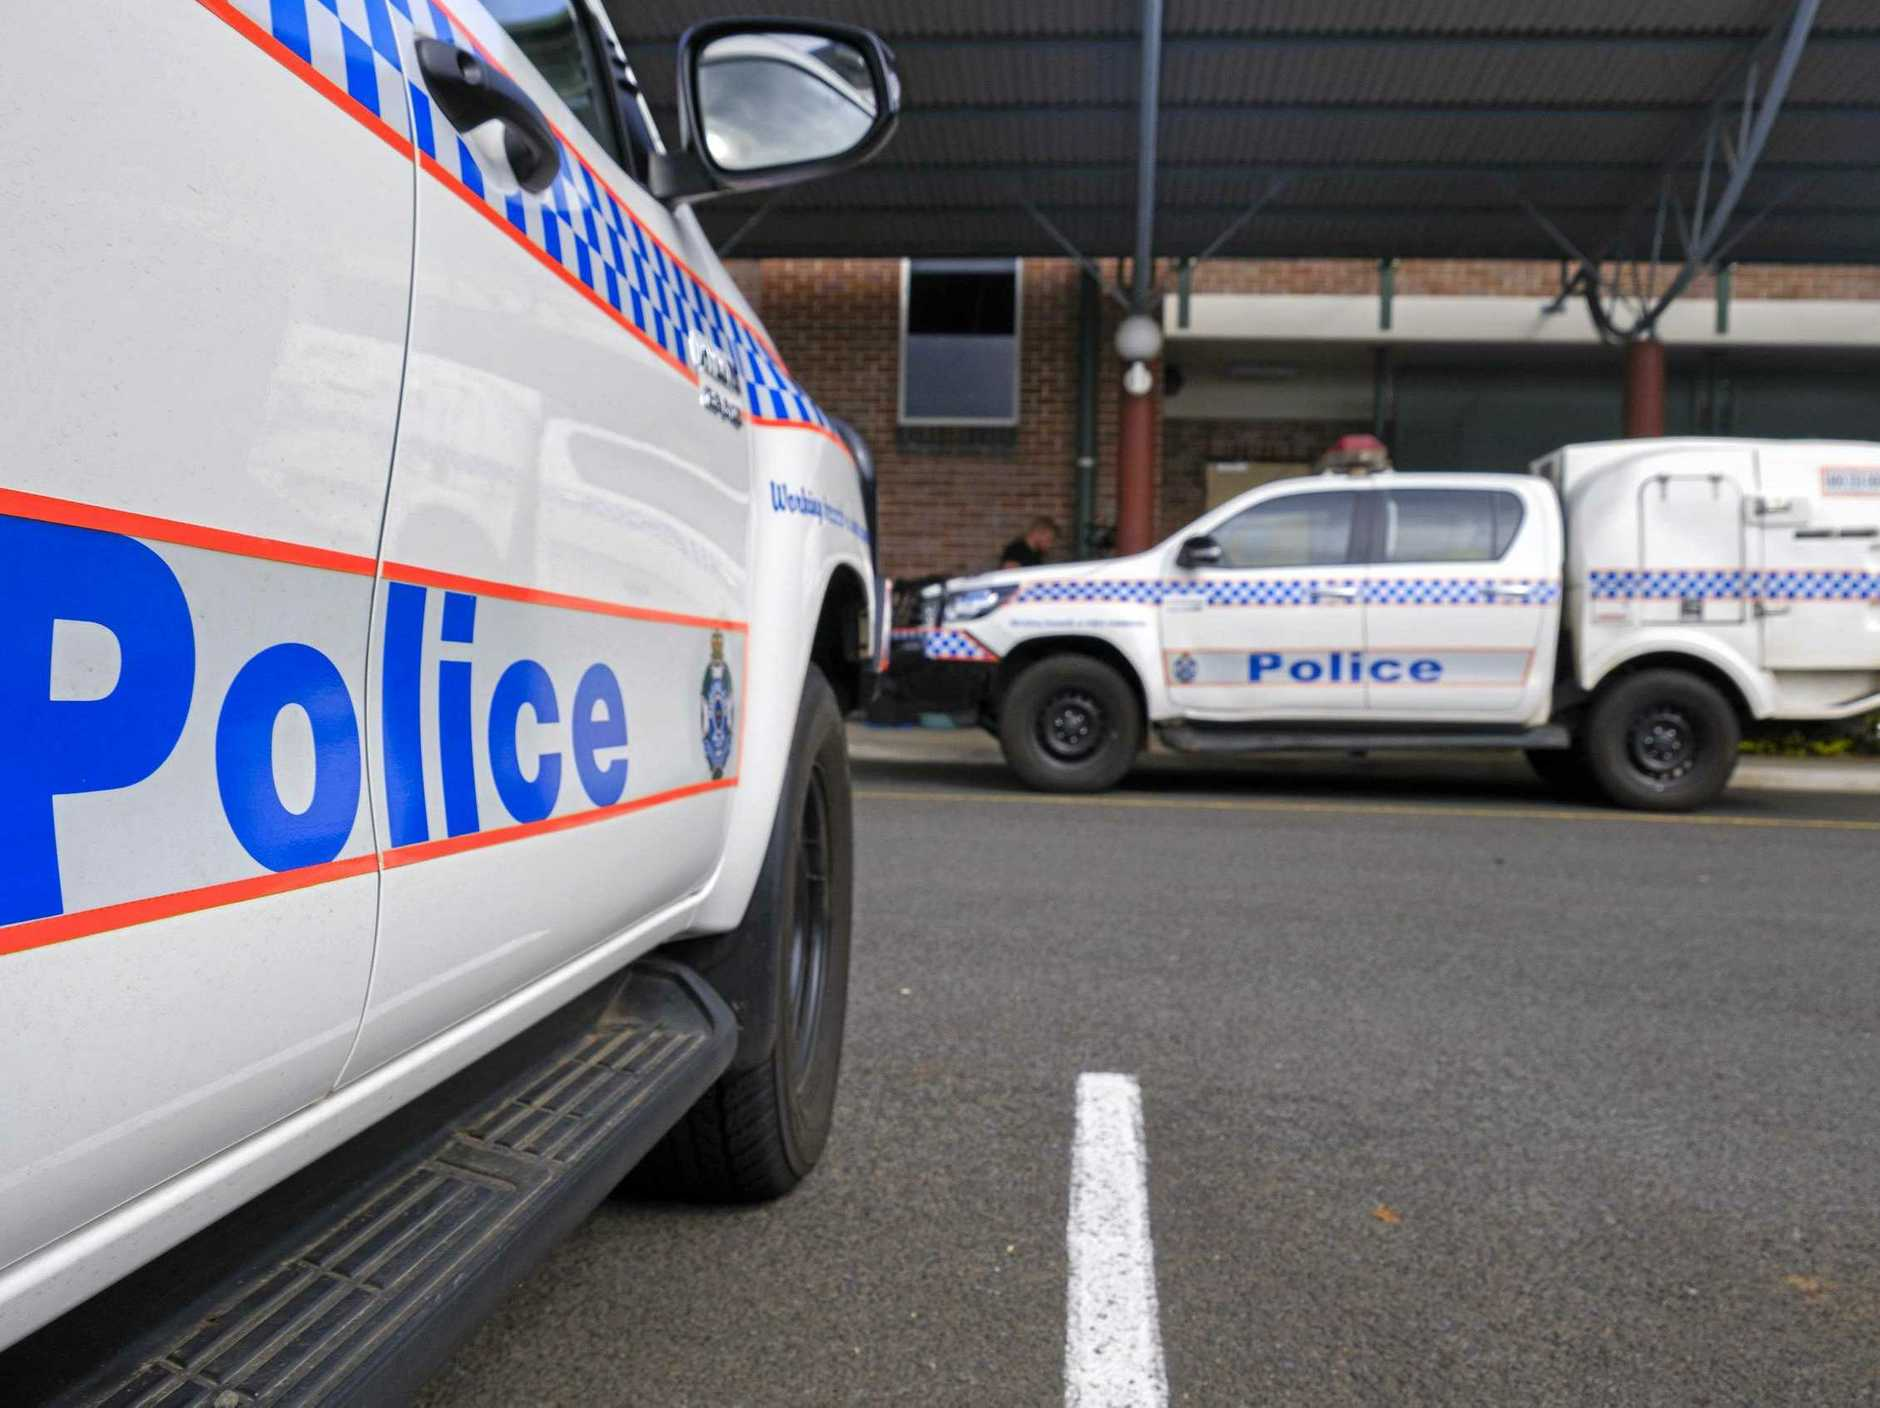 Police were called to the incident in town.